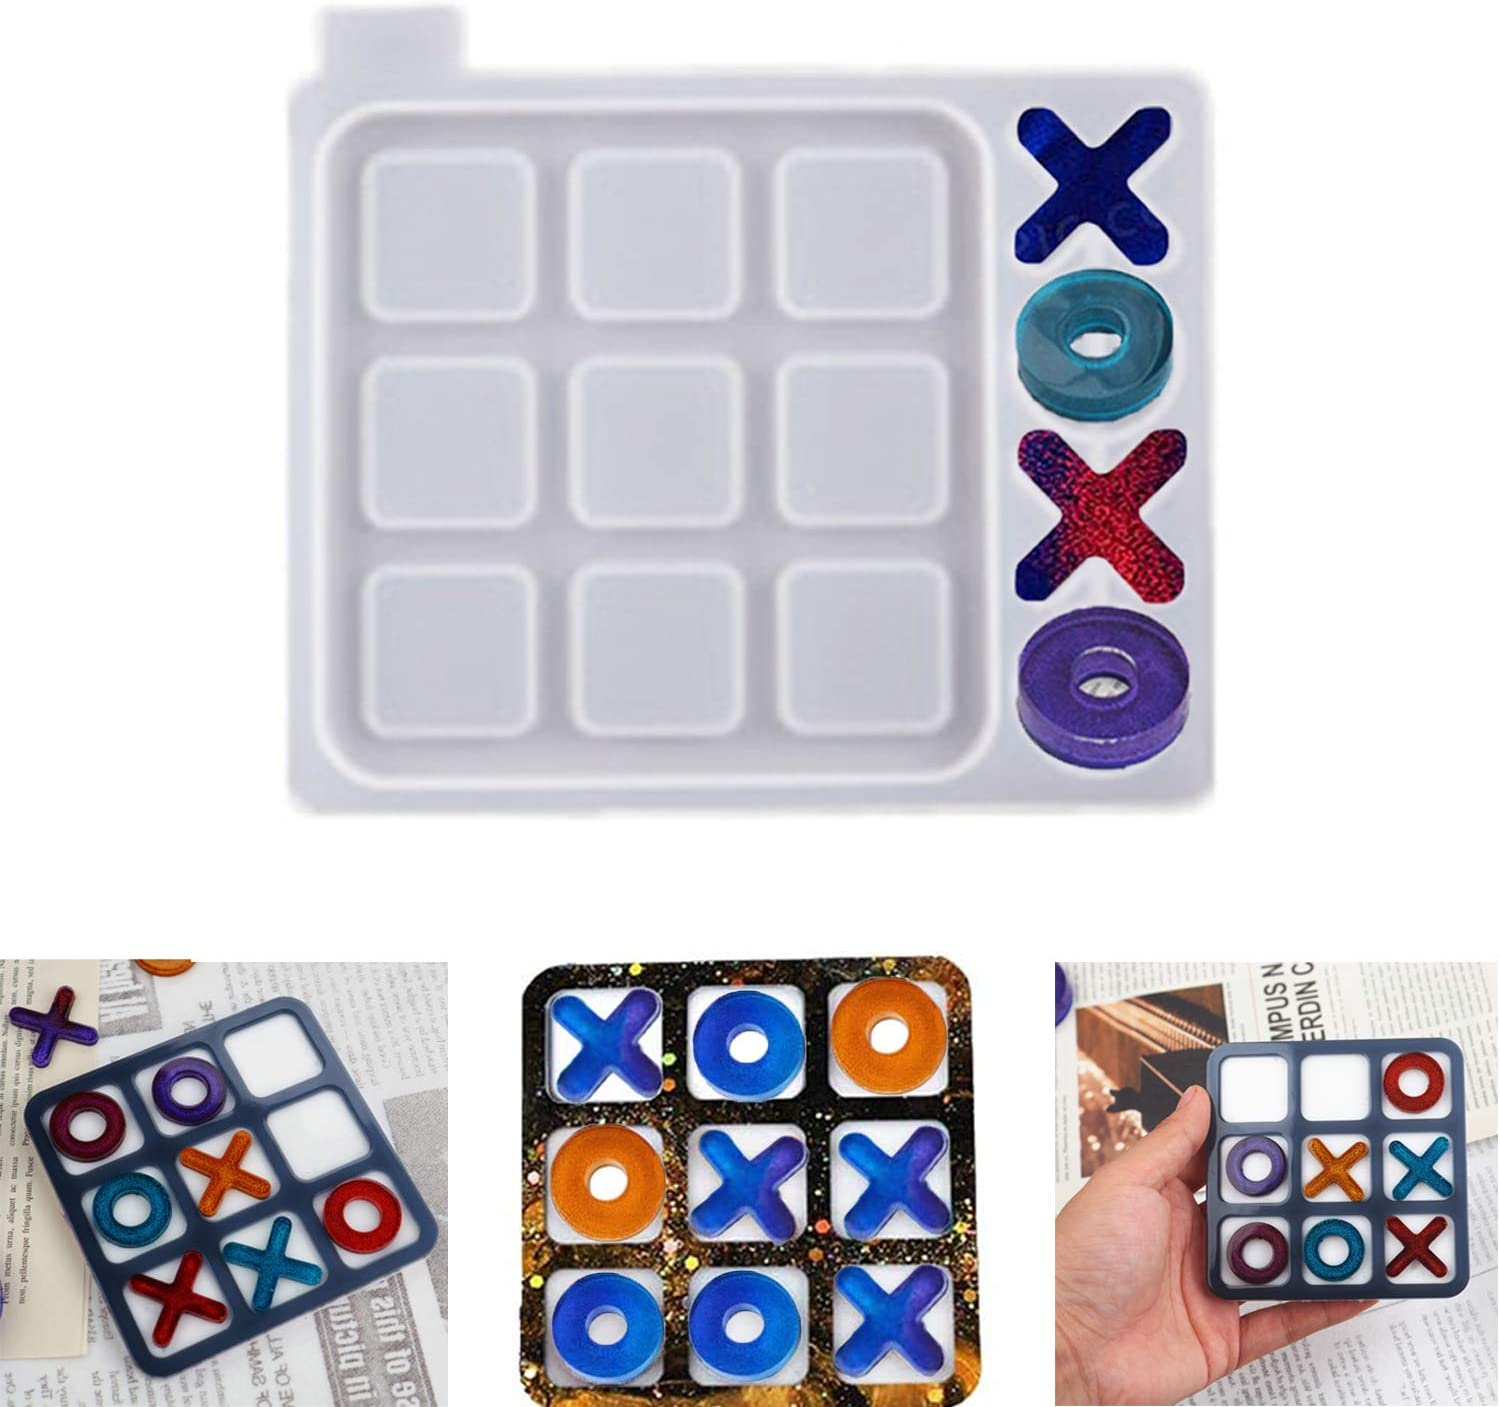 Amazon Com Tic Tac Toe Mold X O Board Game Silicone Resin Mold Kit Modern Farmhouse Porch Decor Coffee Game Table Decor Trouble Game For Kids Friends Adults S